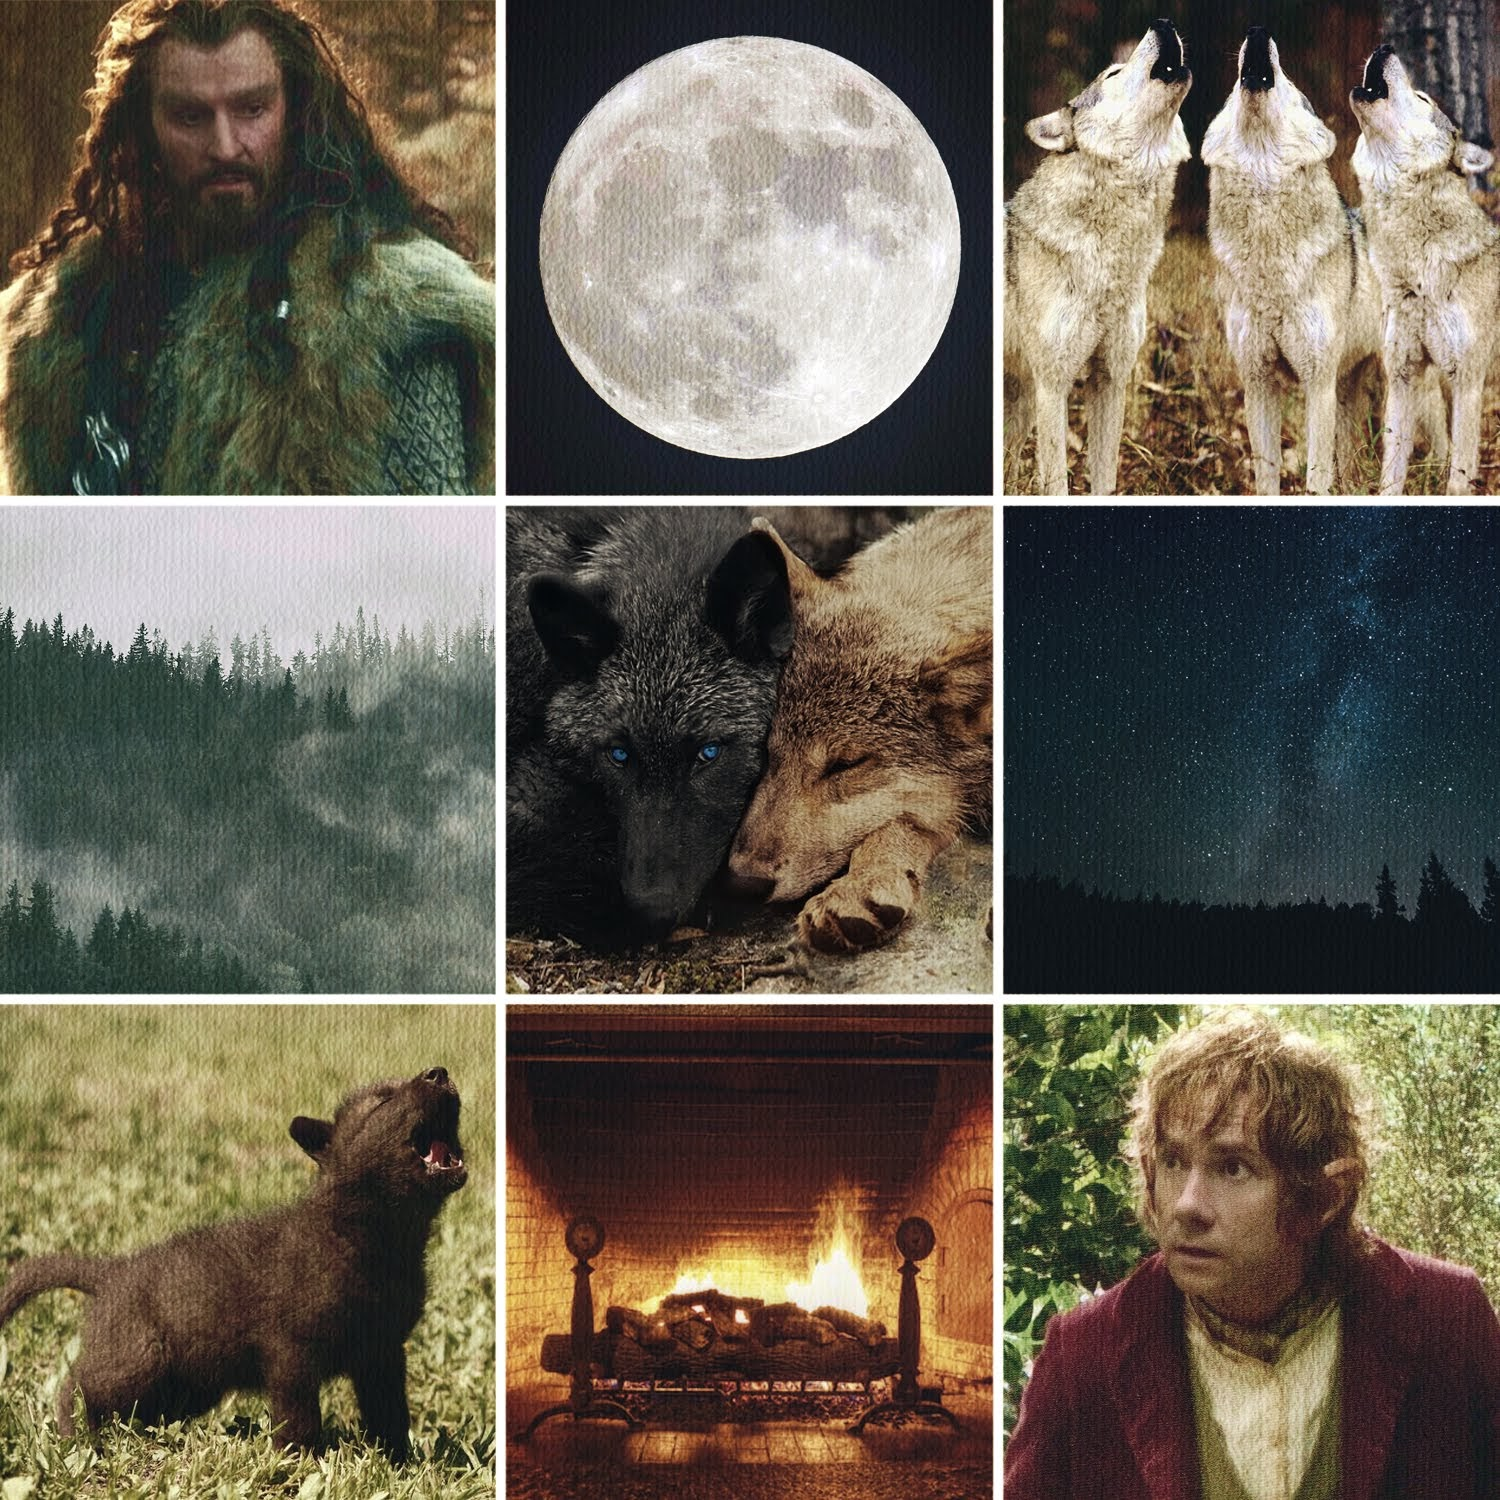 Moodboard with wolves and Thorin and Bilbo